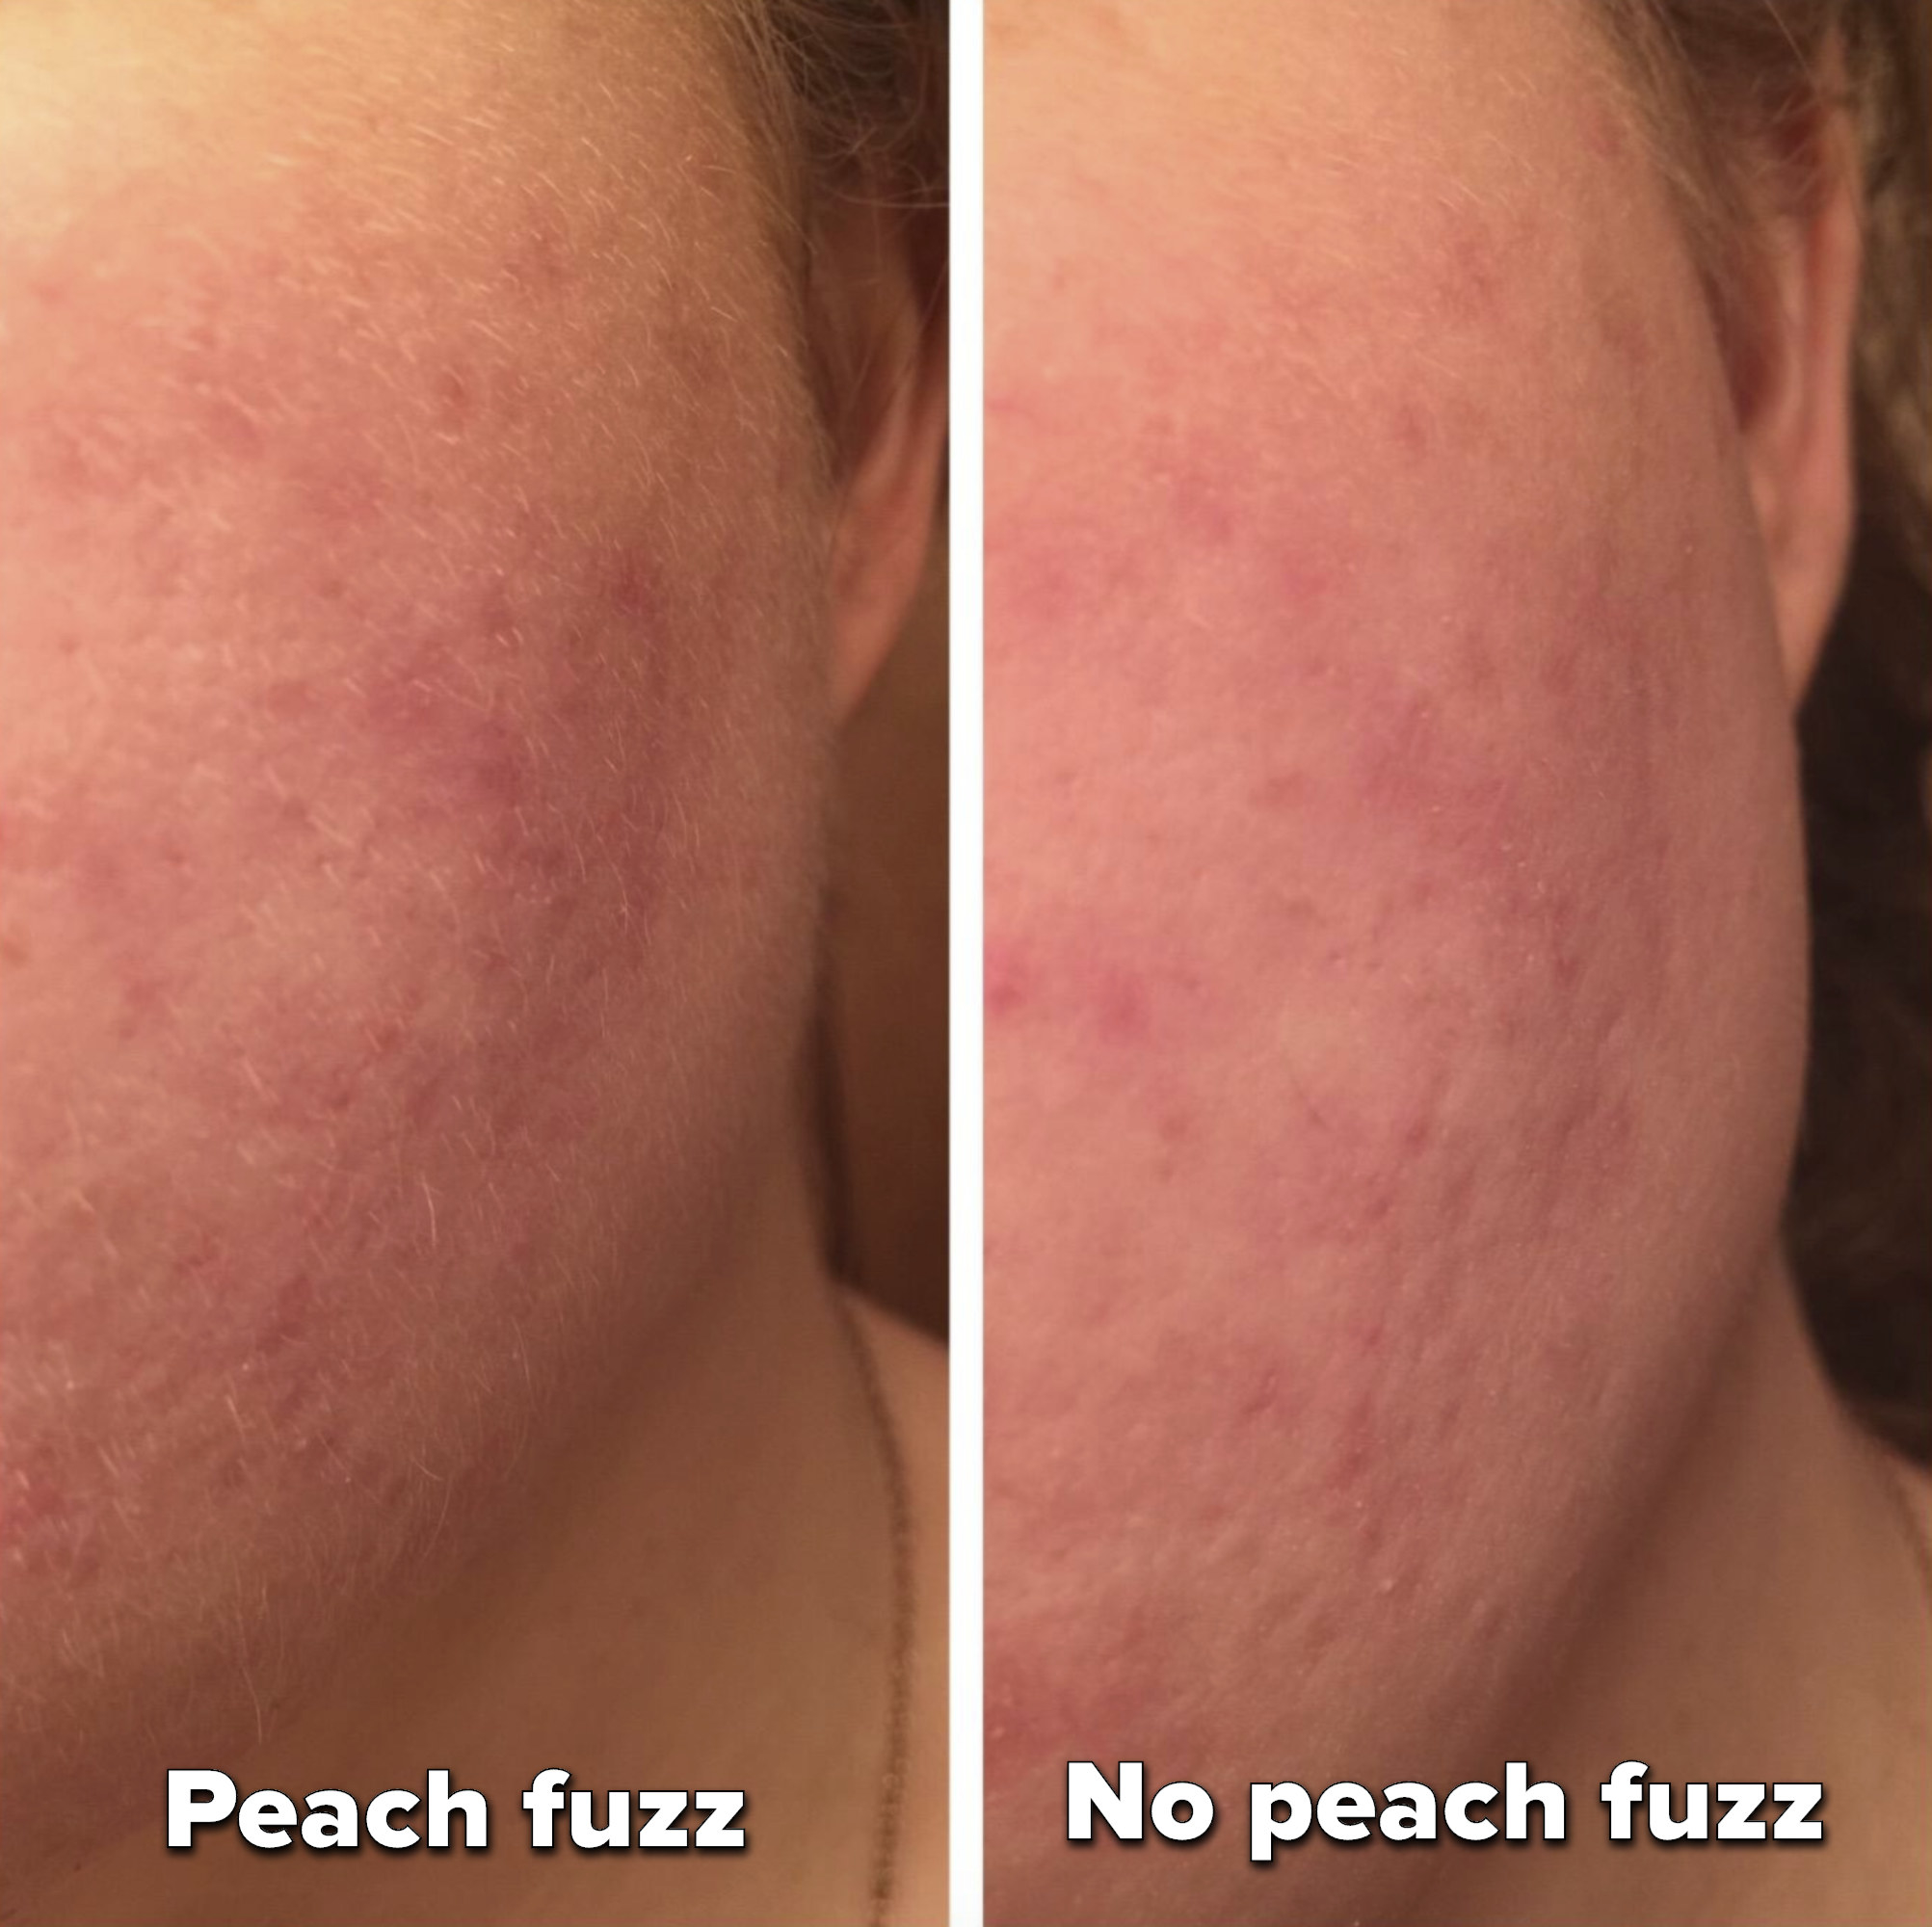 left side has a reviewer's face with peach fuzz and the right shows the same face without peach fuzz